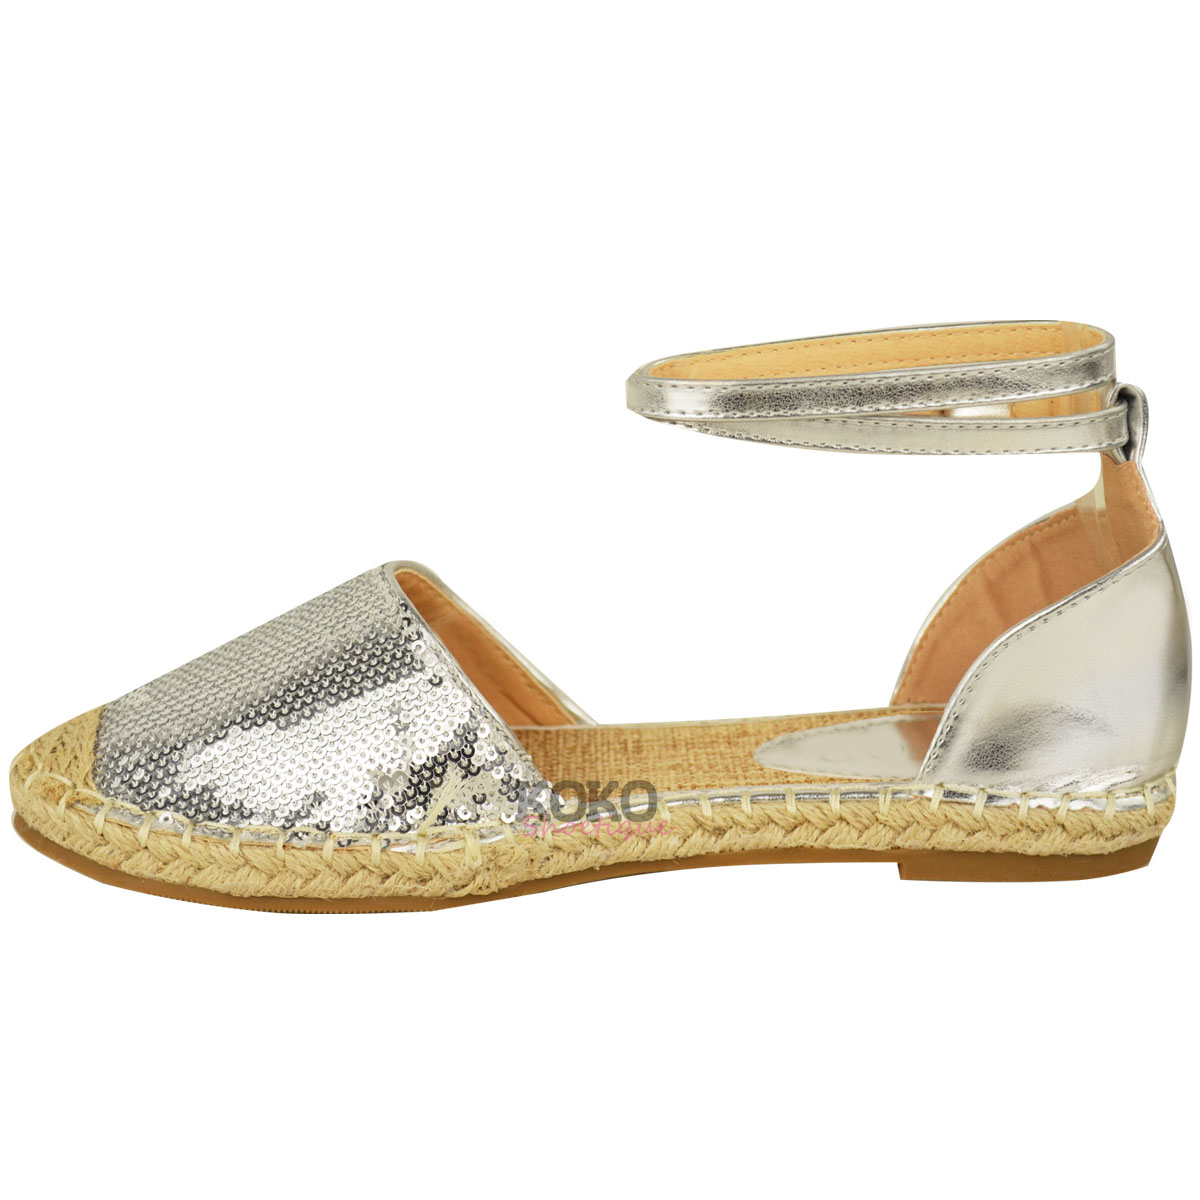 Shop Ecco Bluma Summer Ballerina Flats online at allshop-eqe0tr01.cf One part comfy, one part cute. ECCO's Bluma summer ballerina flats have all your bases covered/5(54).